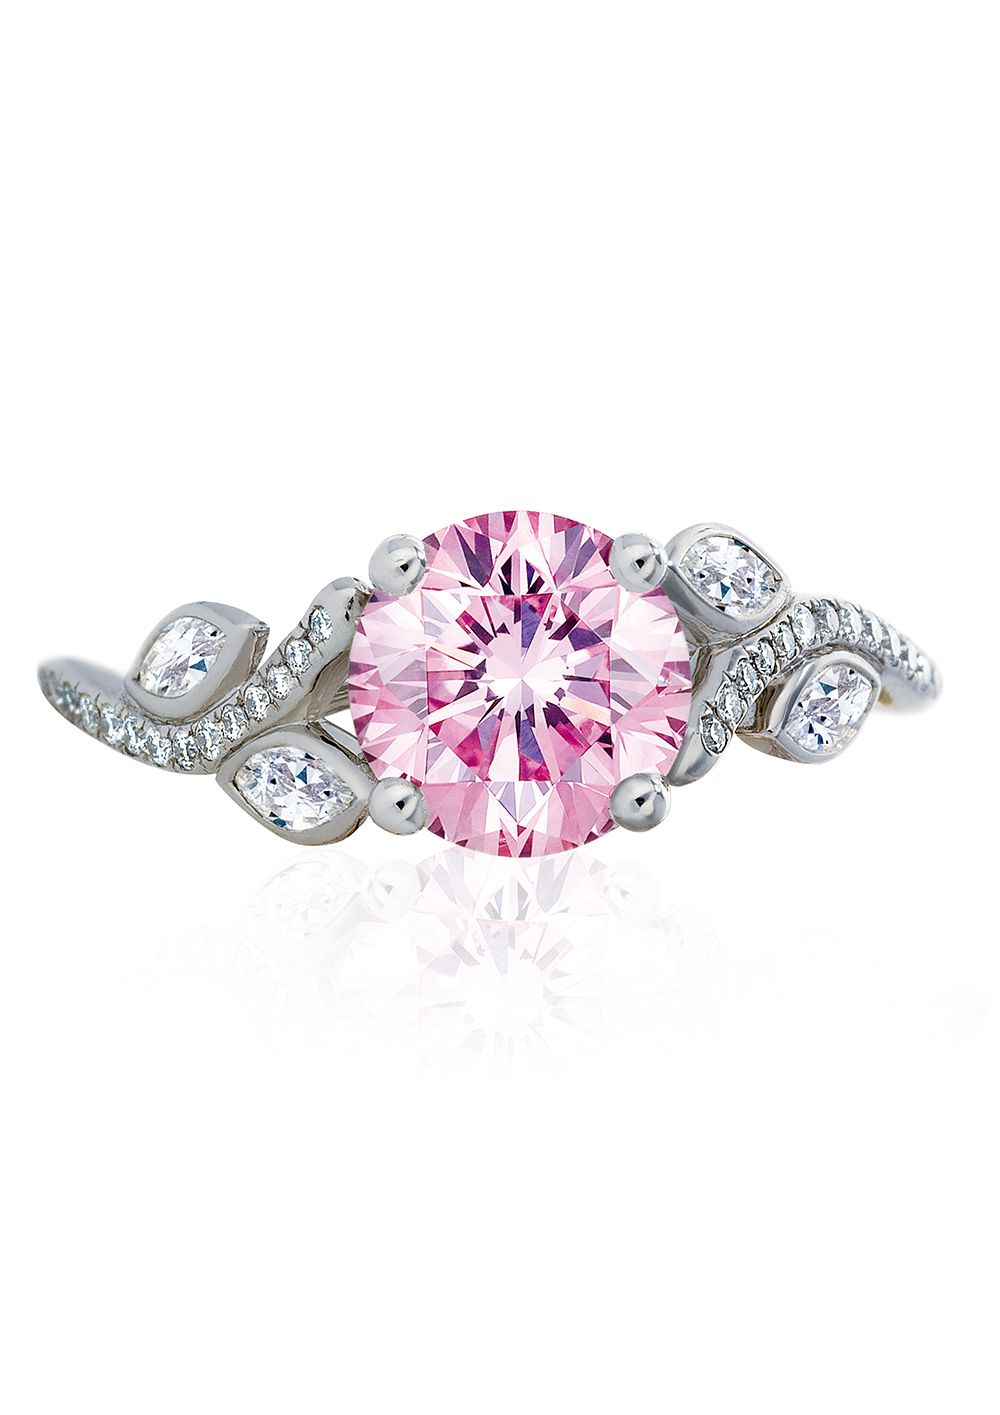 Gorgeous new engagement rings for valentineus day pink diamond